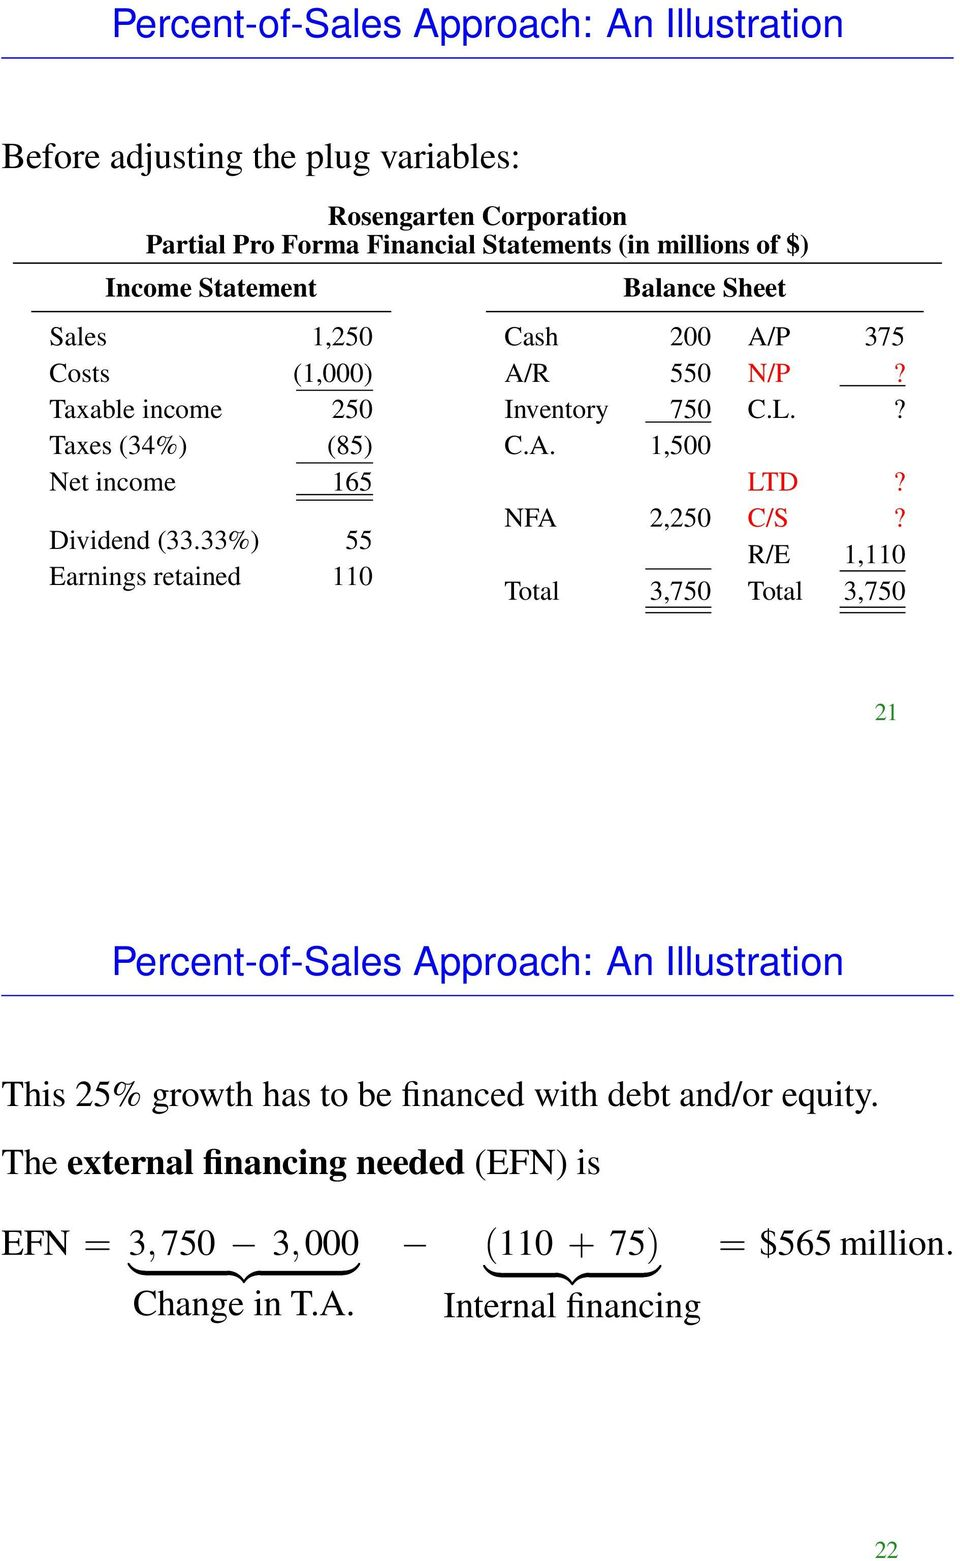 33%) 55 arnings retained 110 Balance Sheet Cash 200 A/P 375 A/R 550 N/P? Inventory 750 C.L.? C.A. 1,500 LTD? NFA 2,250 C/S?